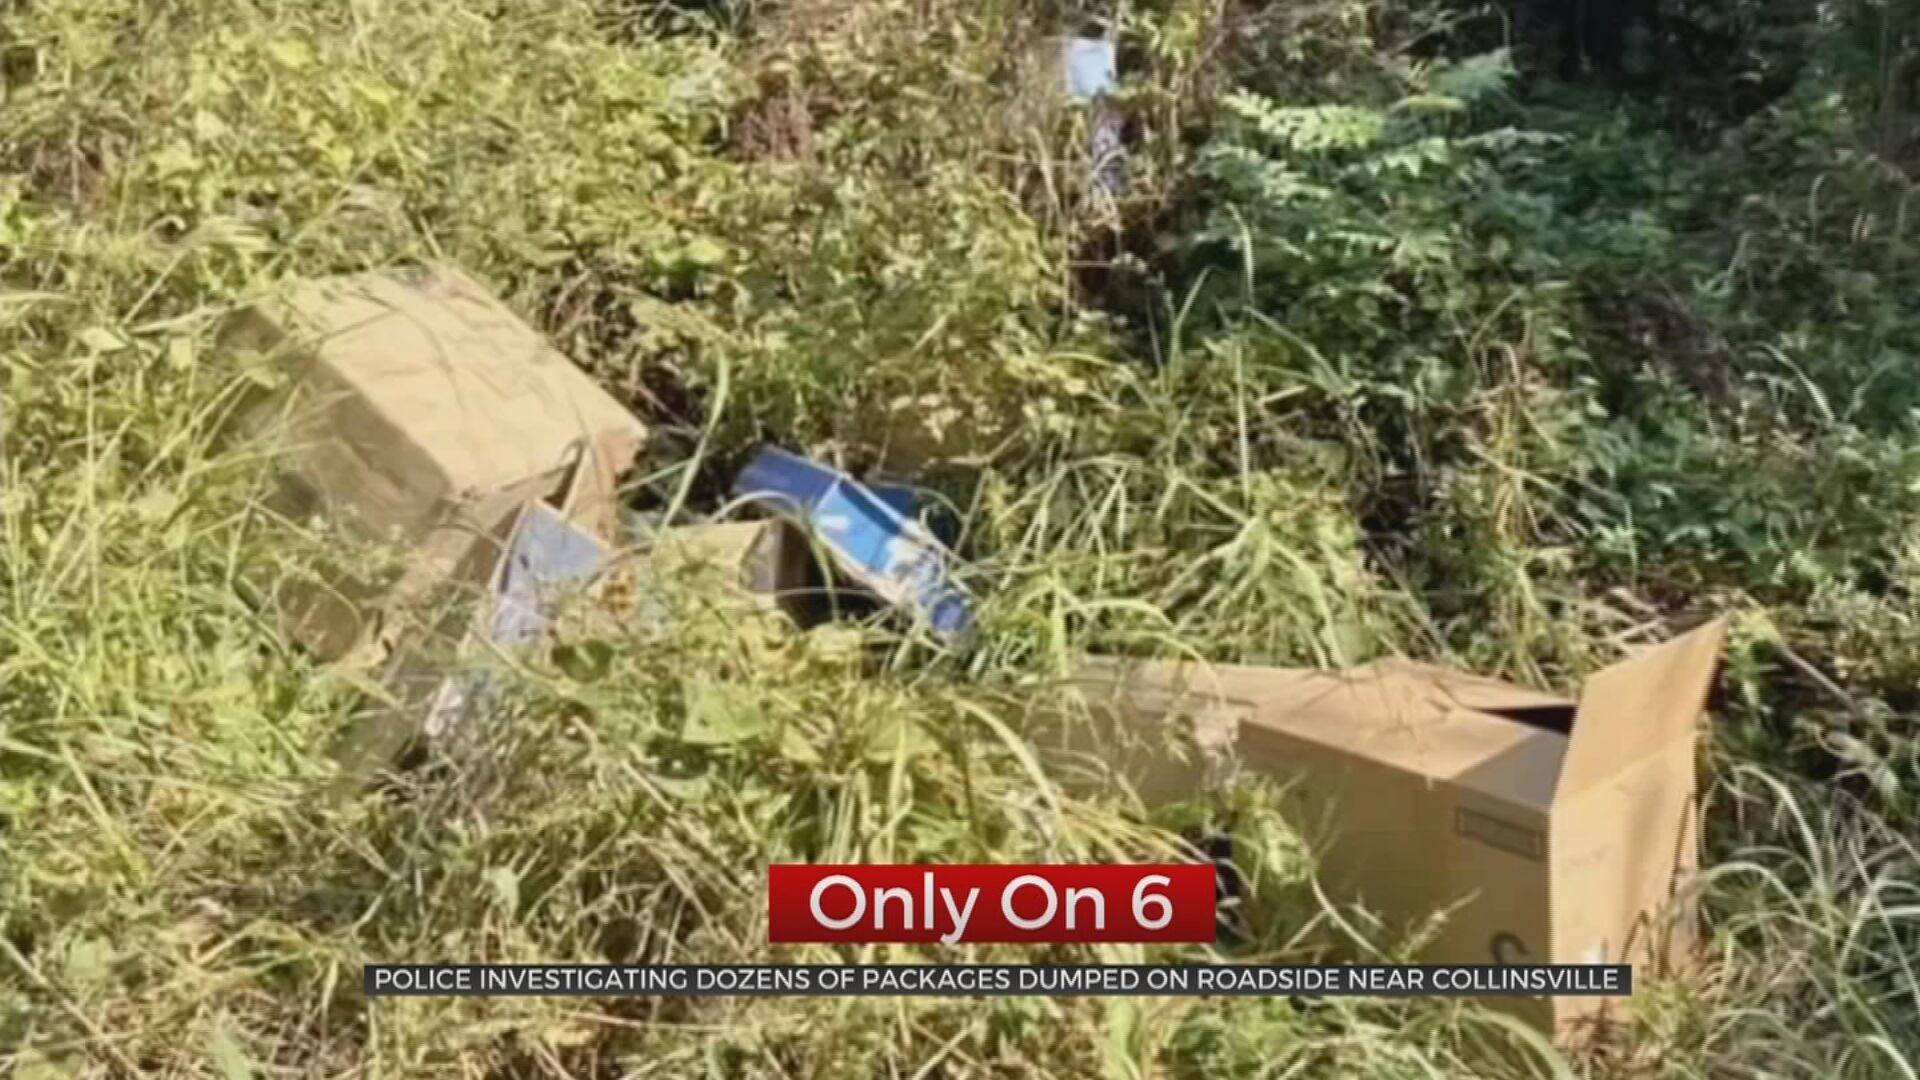 Police Investigate Dozens Of Packages Dumped In Ditch Near Collinsville